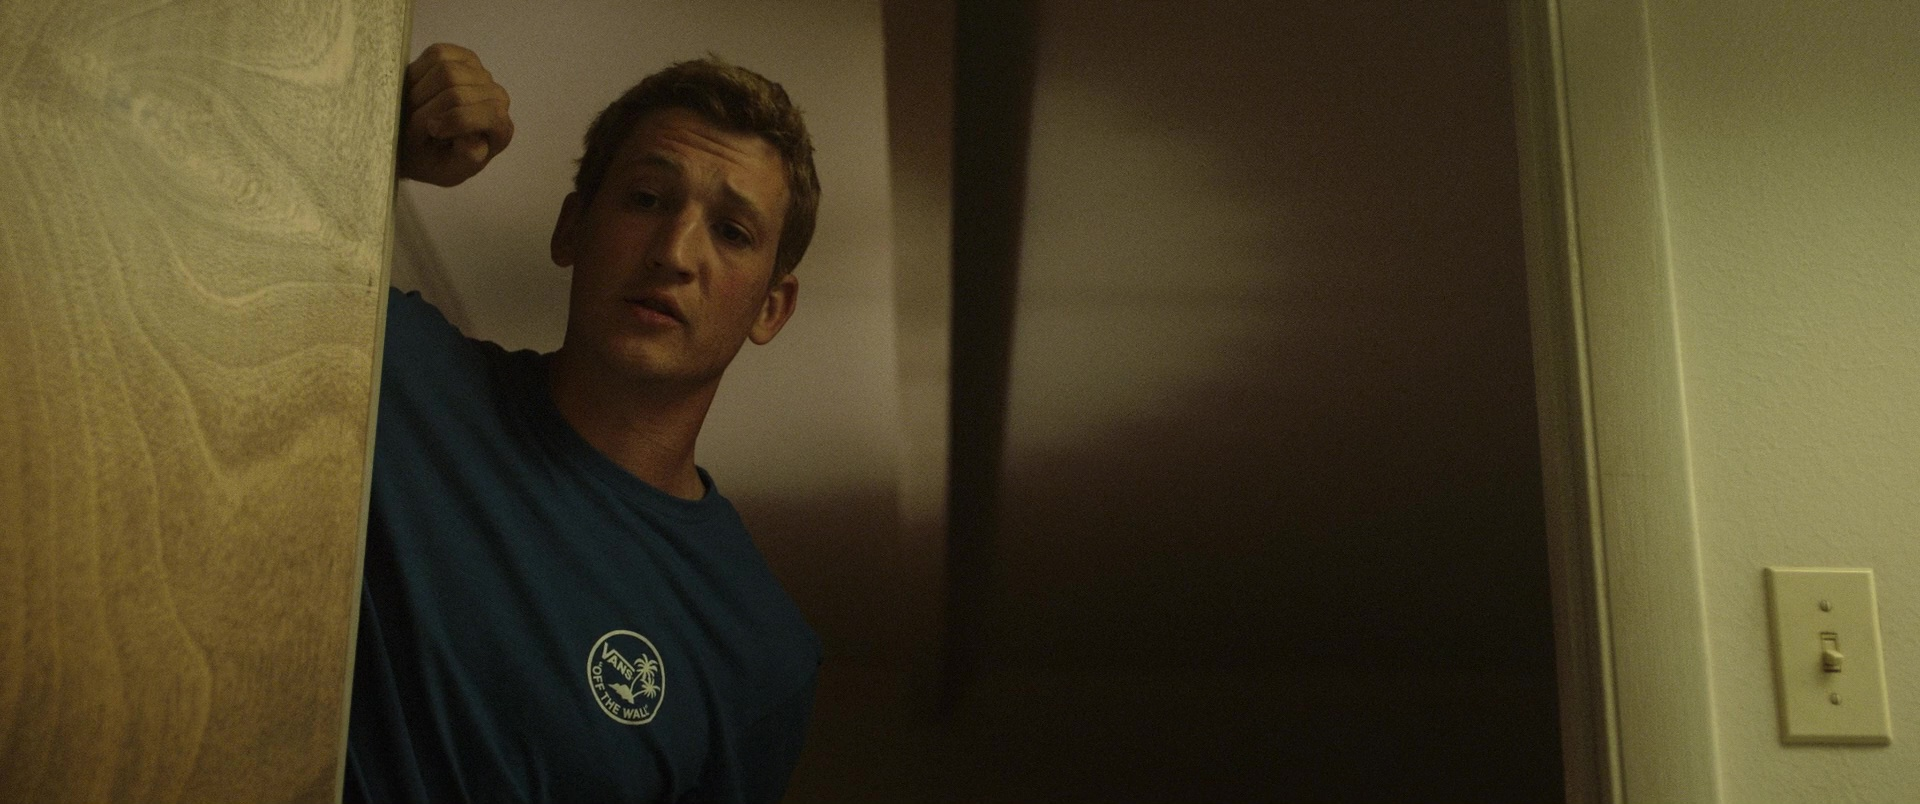 Vans T Shirt Quot Off The Wall Quot Worn By Miles Teller In Only